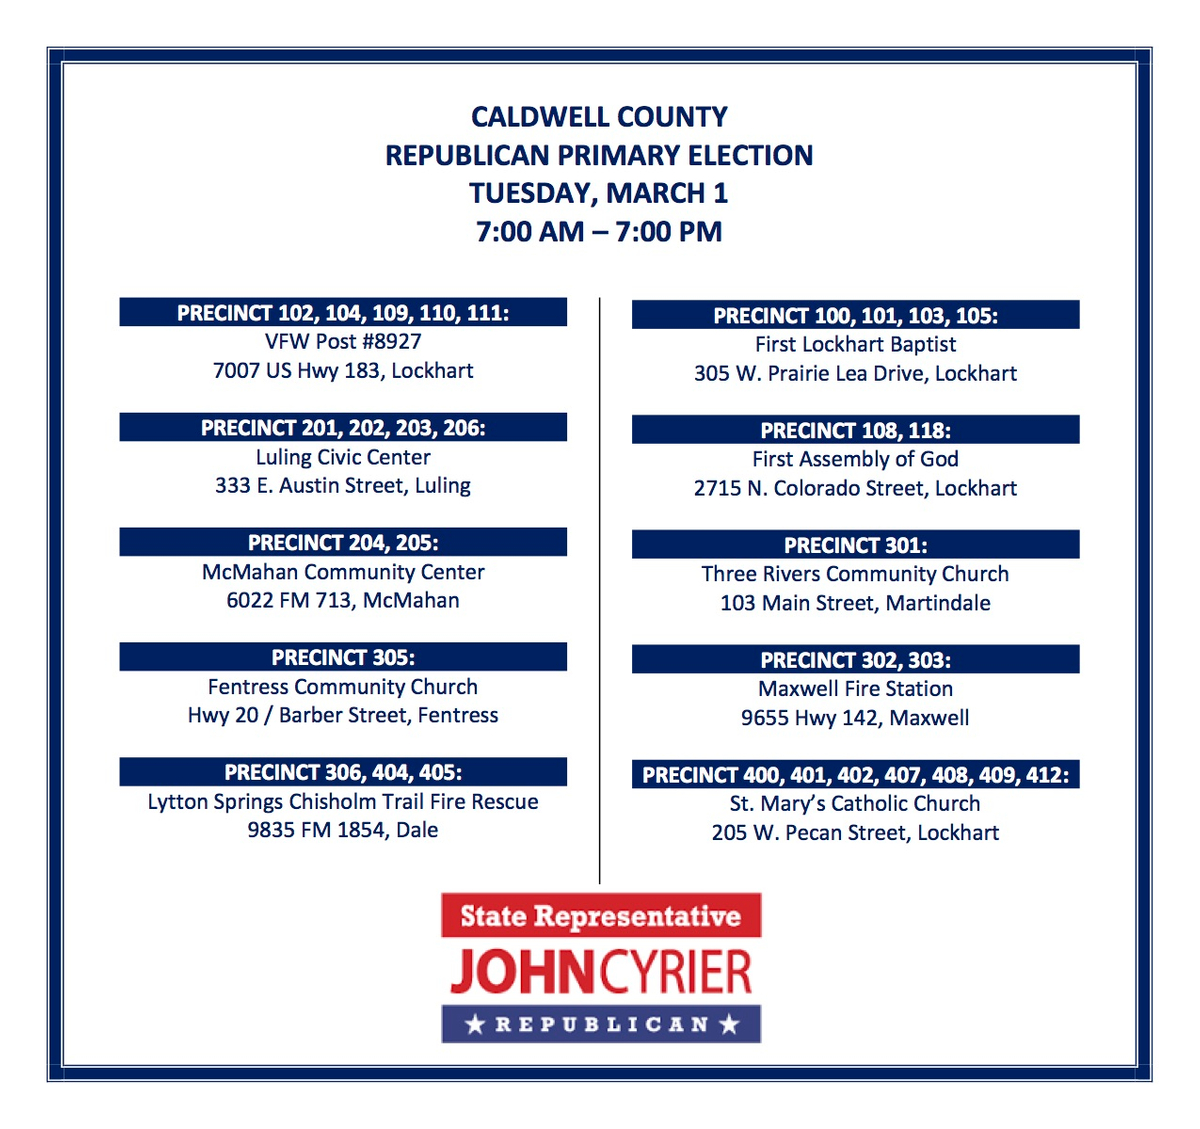 Caldwell County Republican Primary Election 2016 copy.jpg